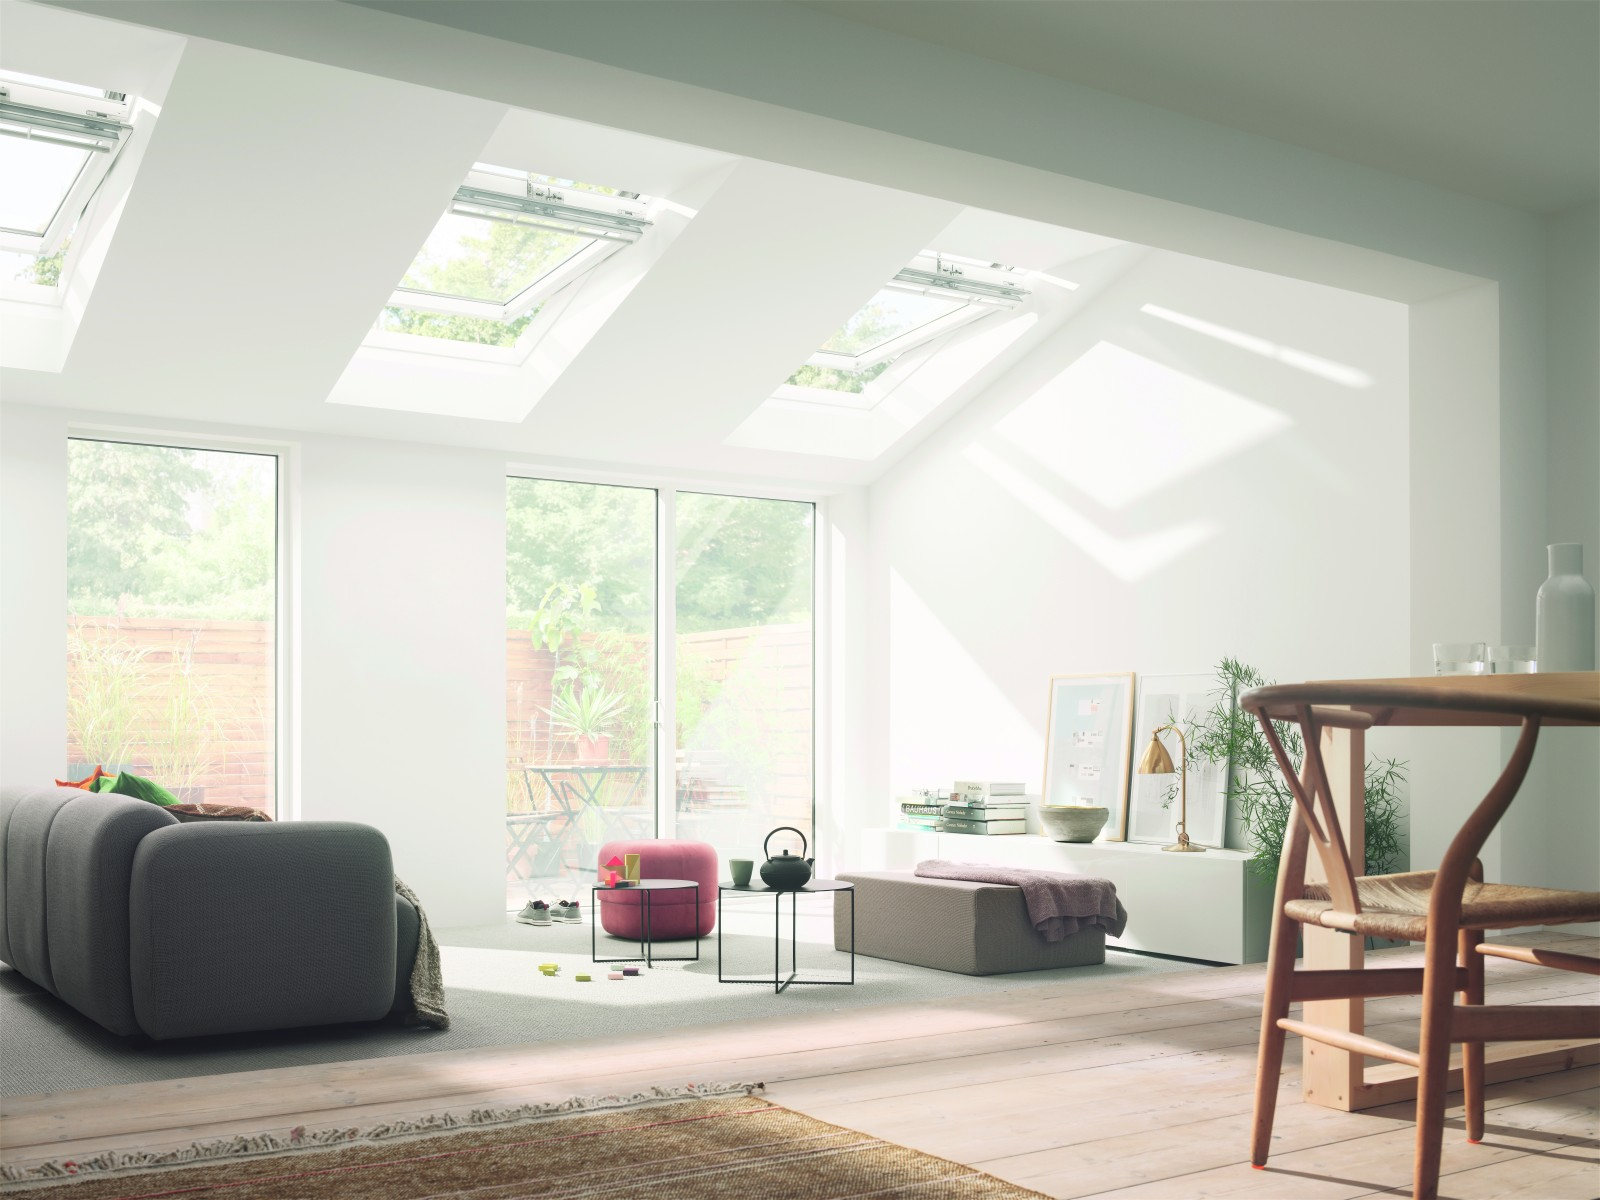 Bring some daylight into your life indoors and improve your mood The VELUX Group